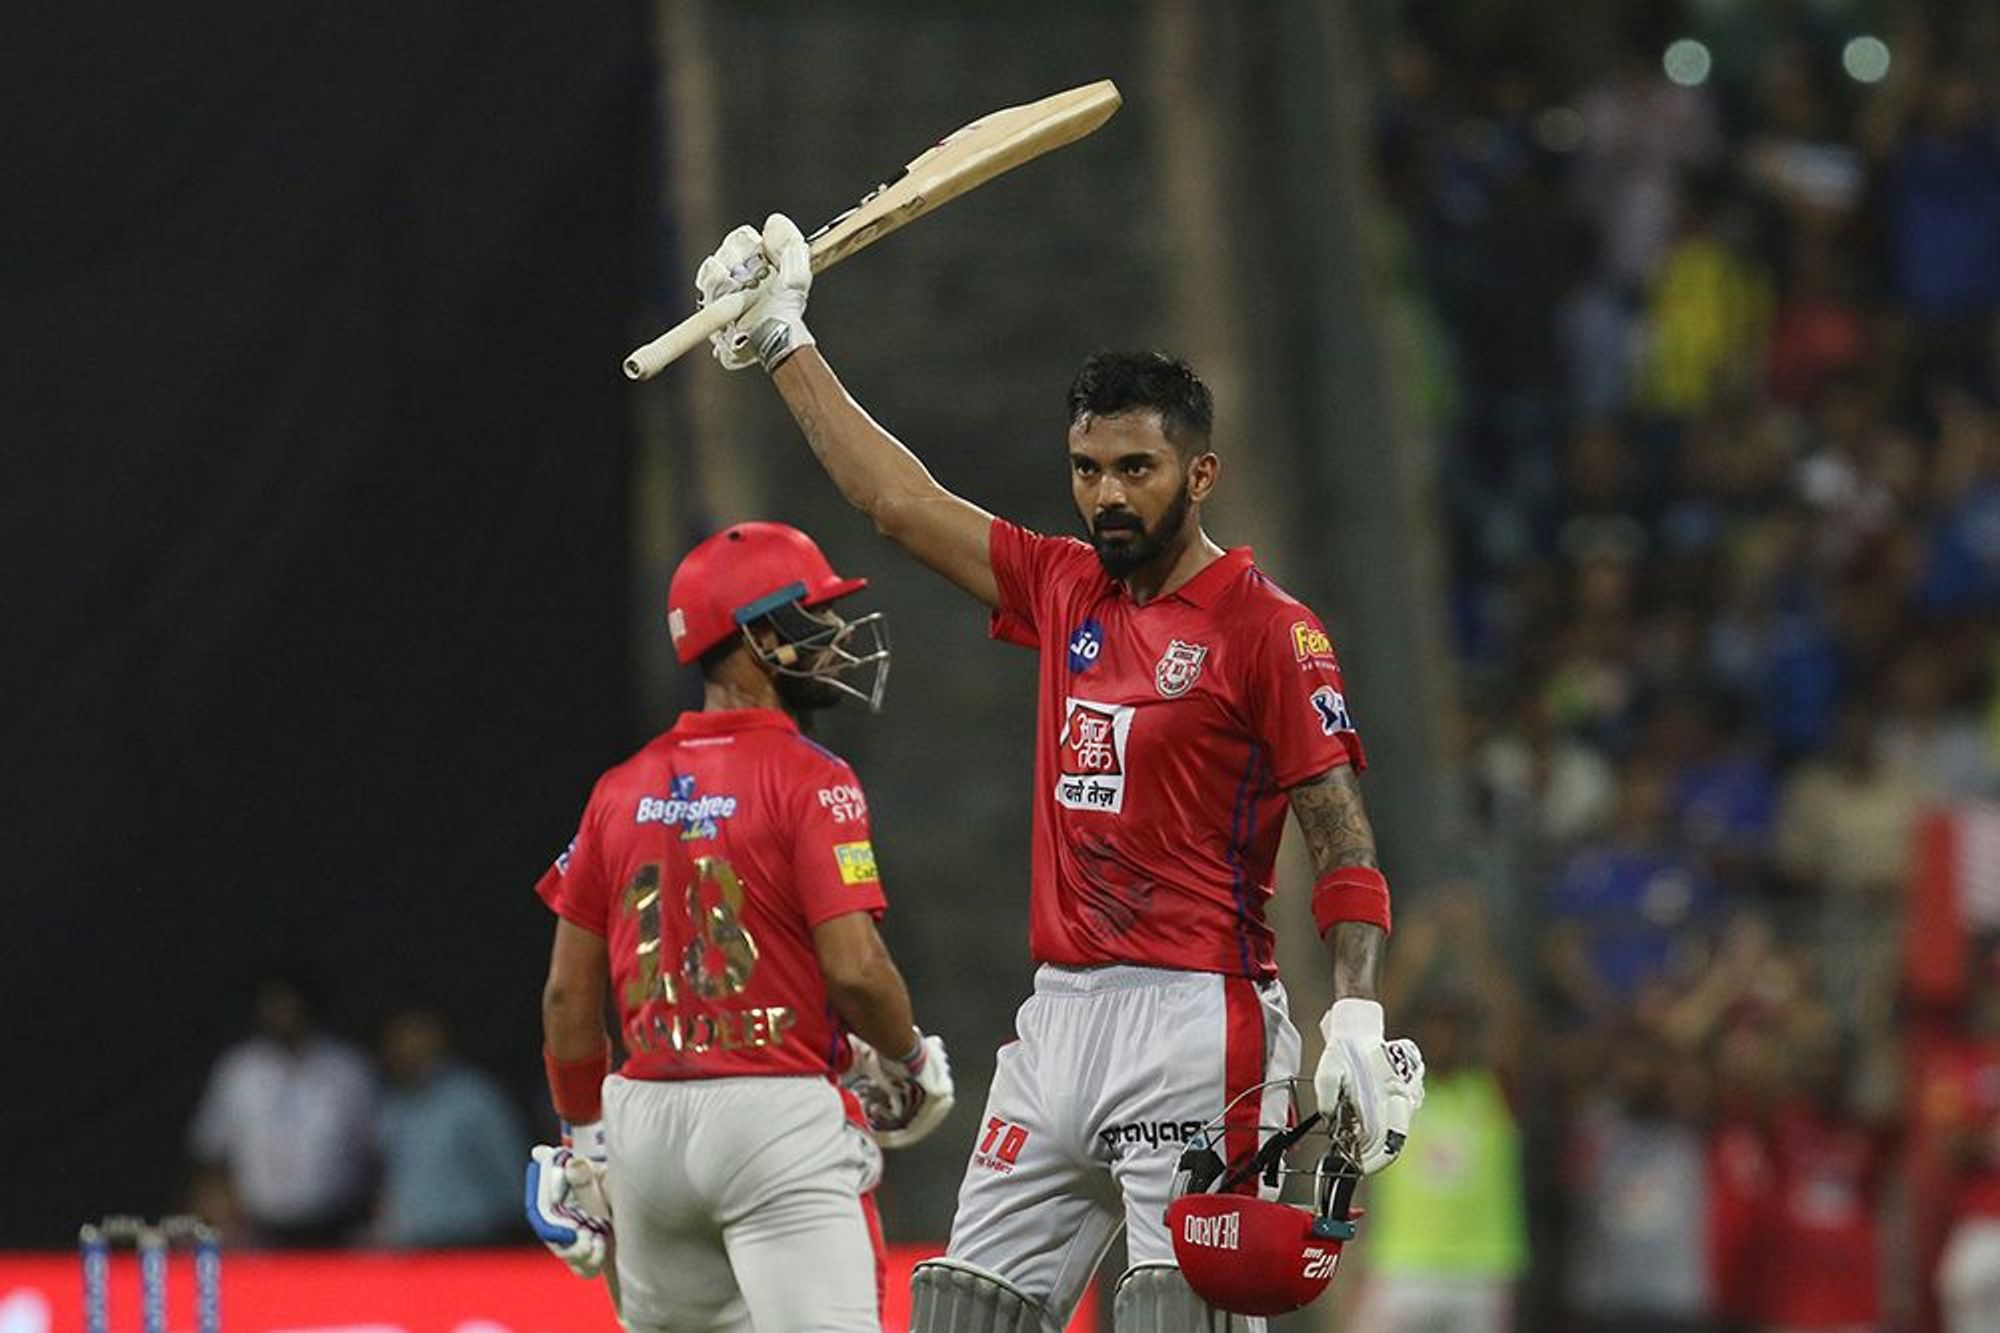 DC vs KXIP Dream11 Key Players best picks: KL Rahul to fire, Glenn Maxwell and Rishabh Pant could be the game changers